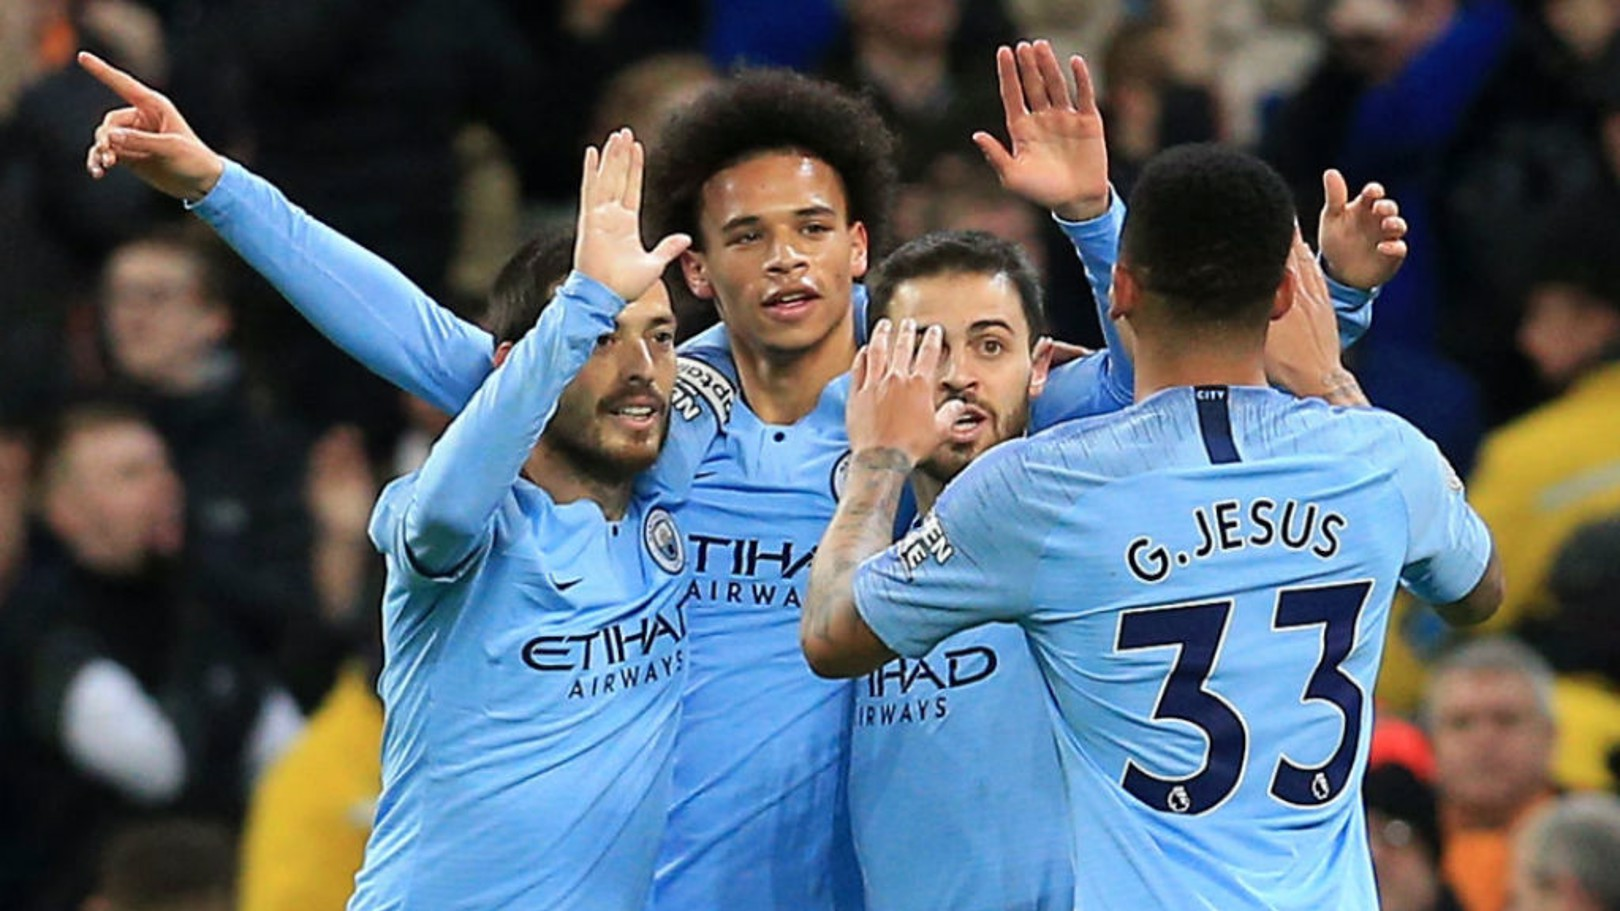 Dunne: Desire is key for City in title race